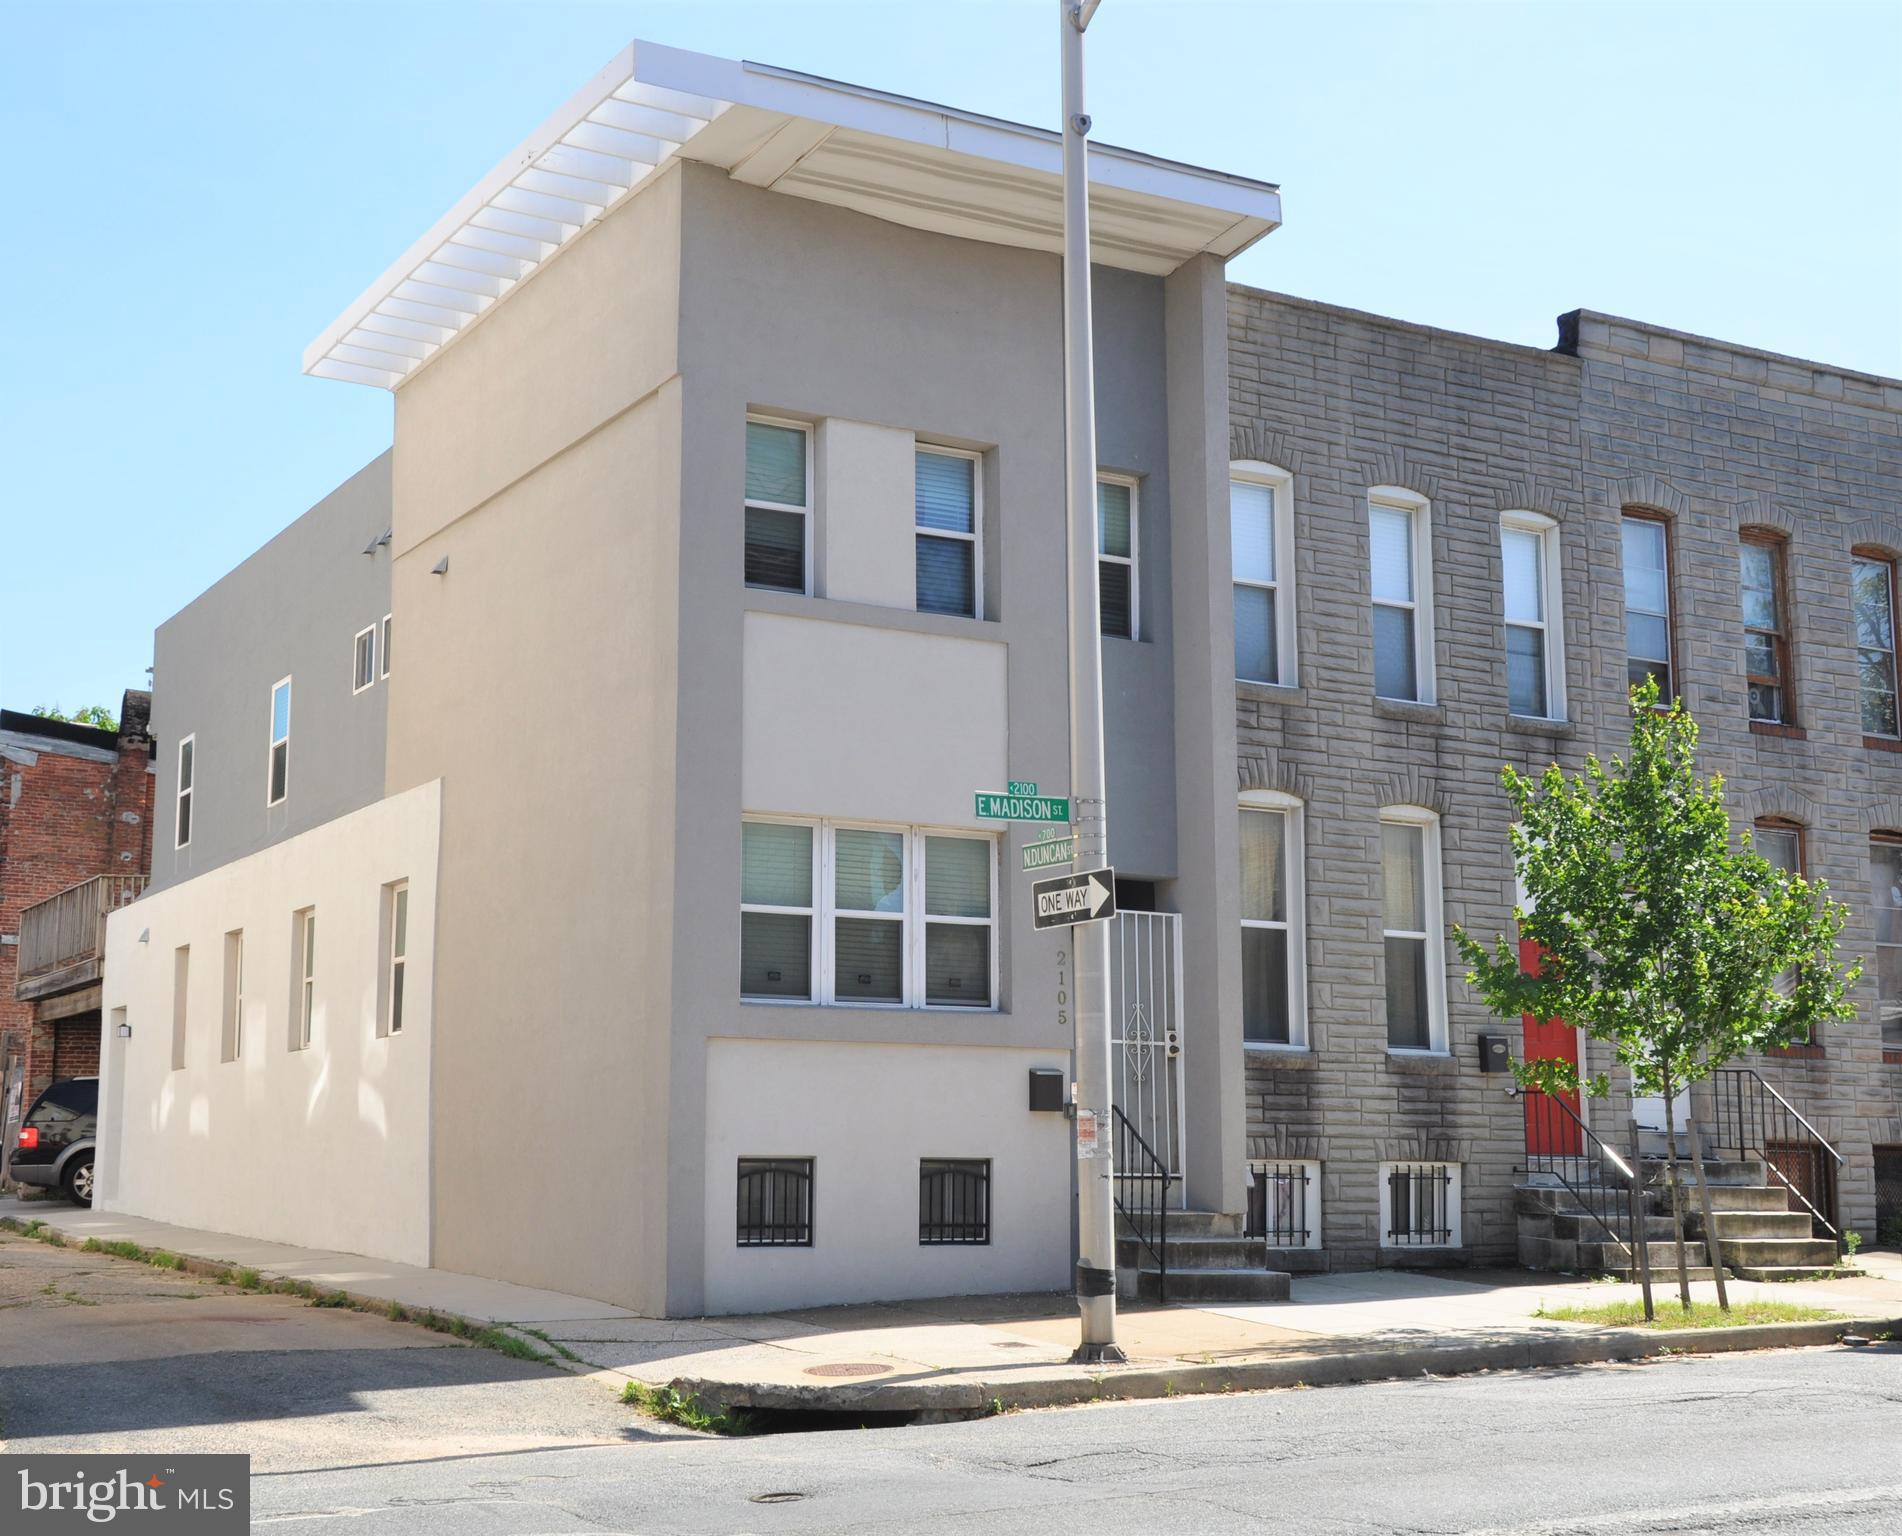 2105 E MADISON STREET, BALTIMORE, MD 21205